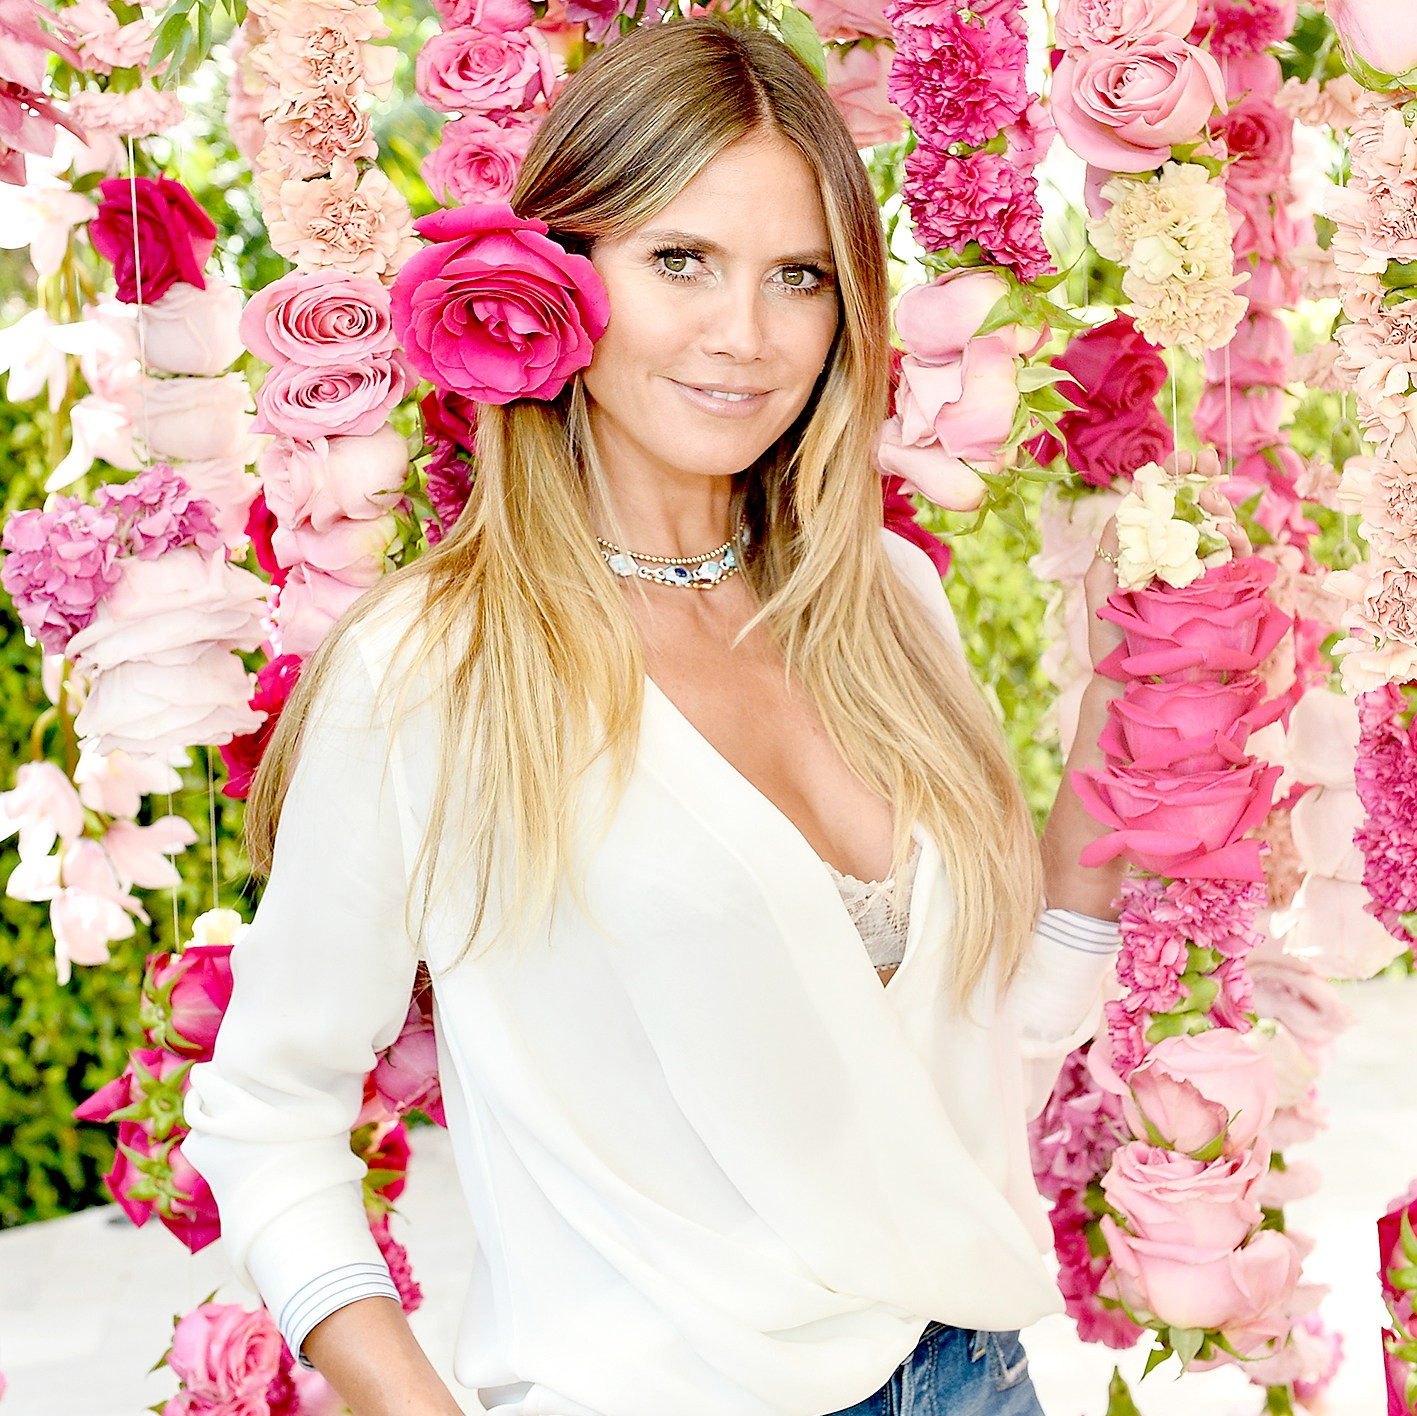 Heidi Klum Unveils Latest Heidi Klum Intimates Campaign at Bra Brunch in Los Angeles at Hotel Bel-Air on August 17, 2017 in Los Angeles, California.